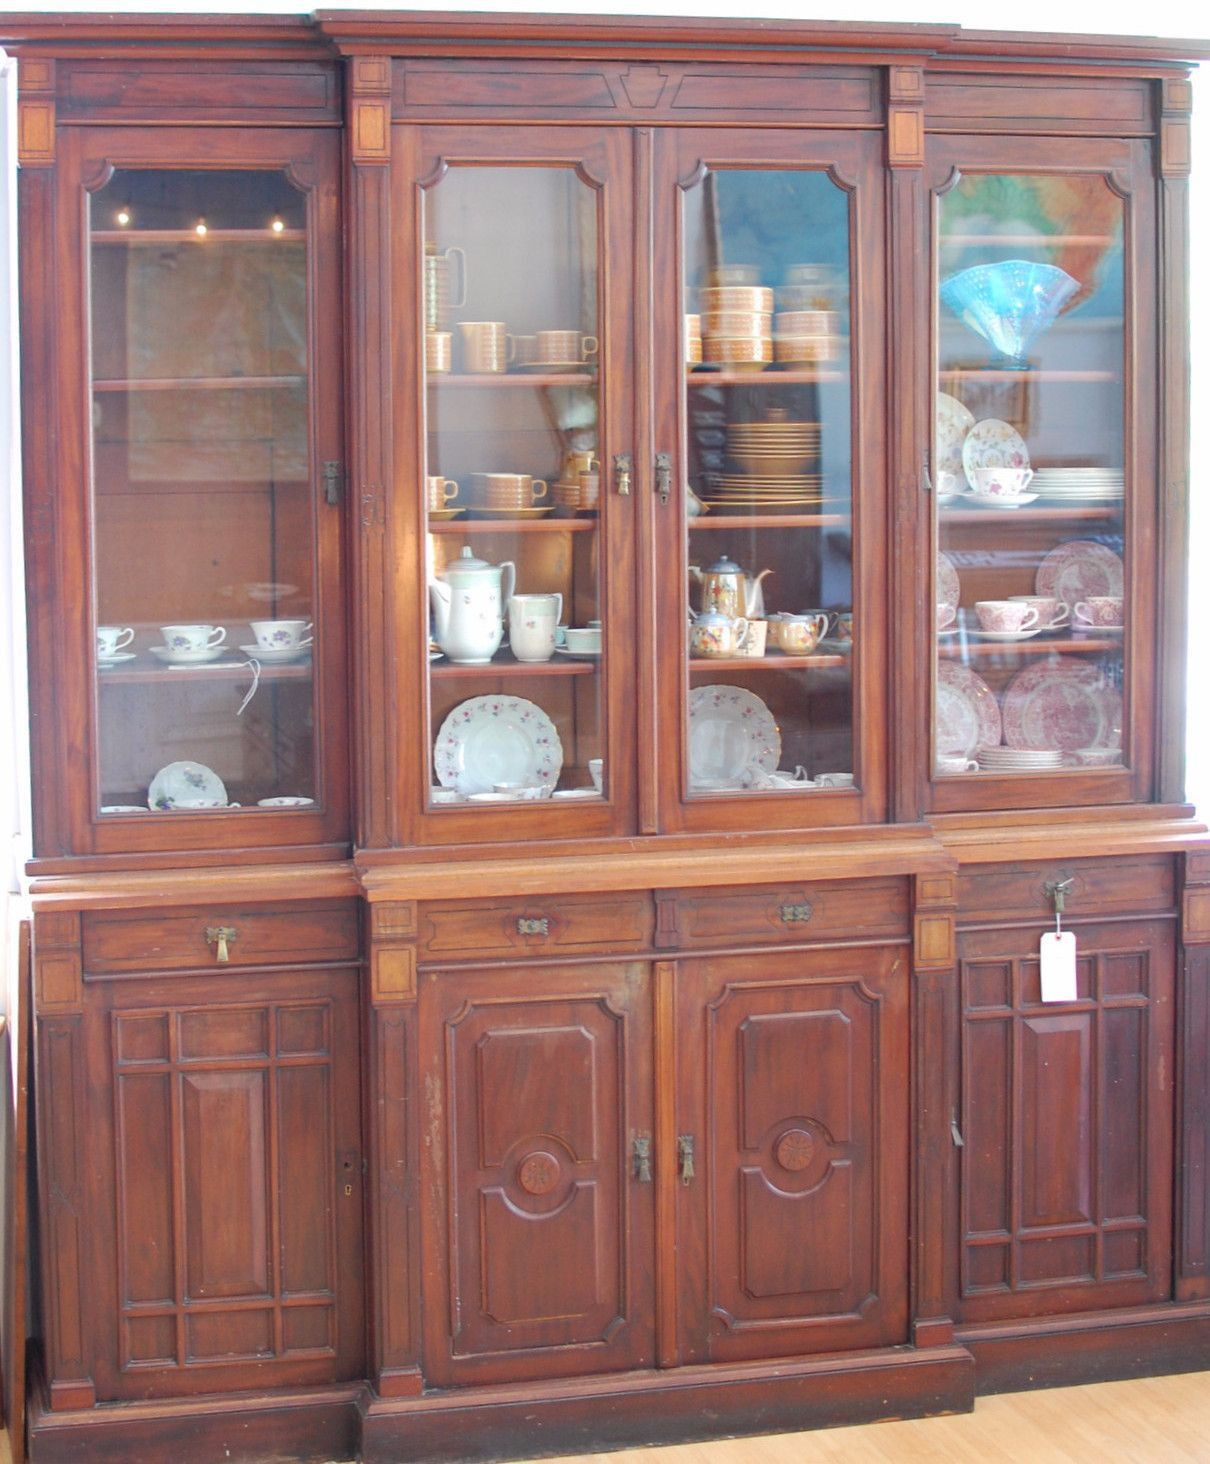 Cheap Antique Furniture For Sale Online: Buy Victorian Breakfront Bookcase At Bloodline Merchants